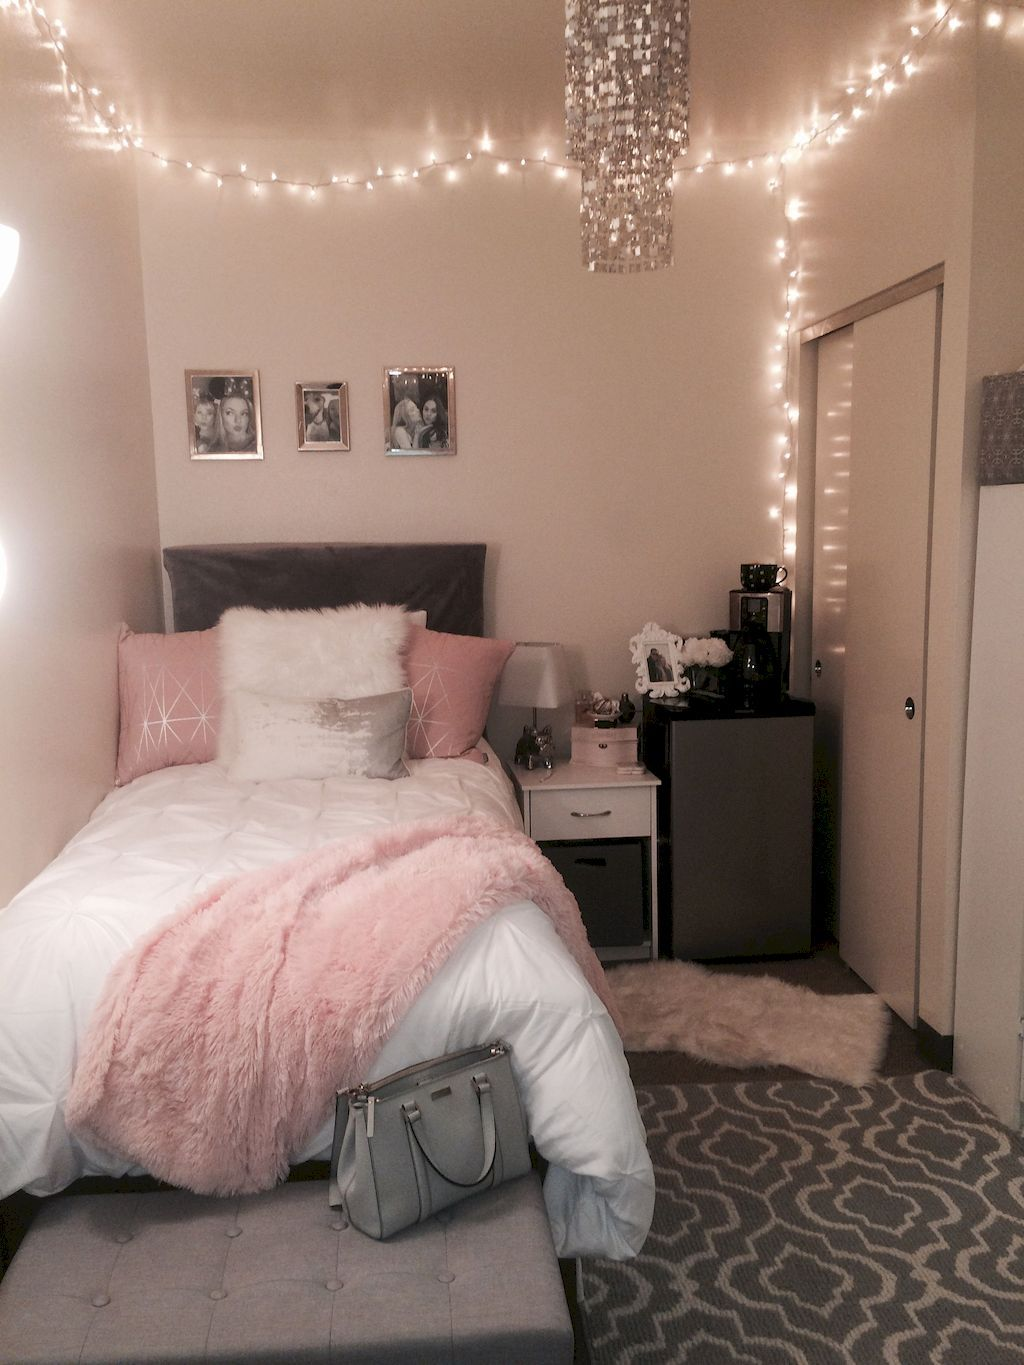 65 Creative Dorm Room Decorating Ideas On A Budget Dorm Room Decor Small Room Bedroom Room Decor